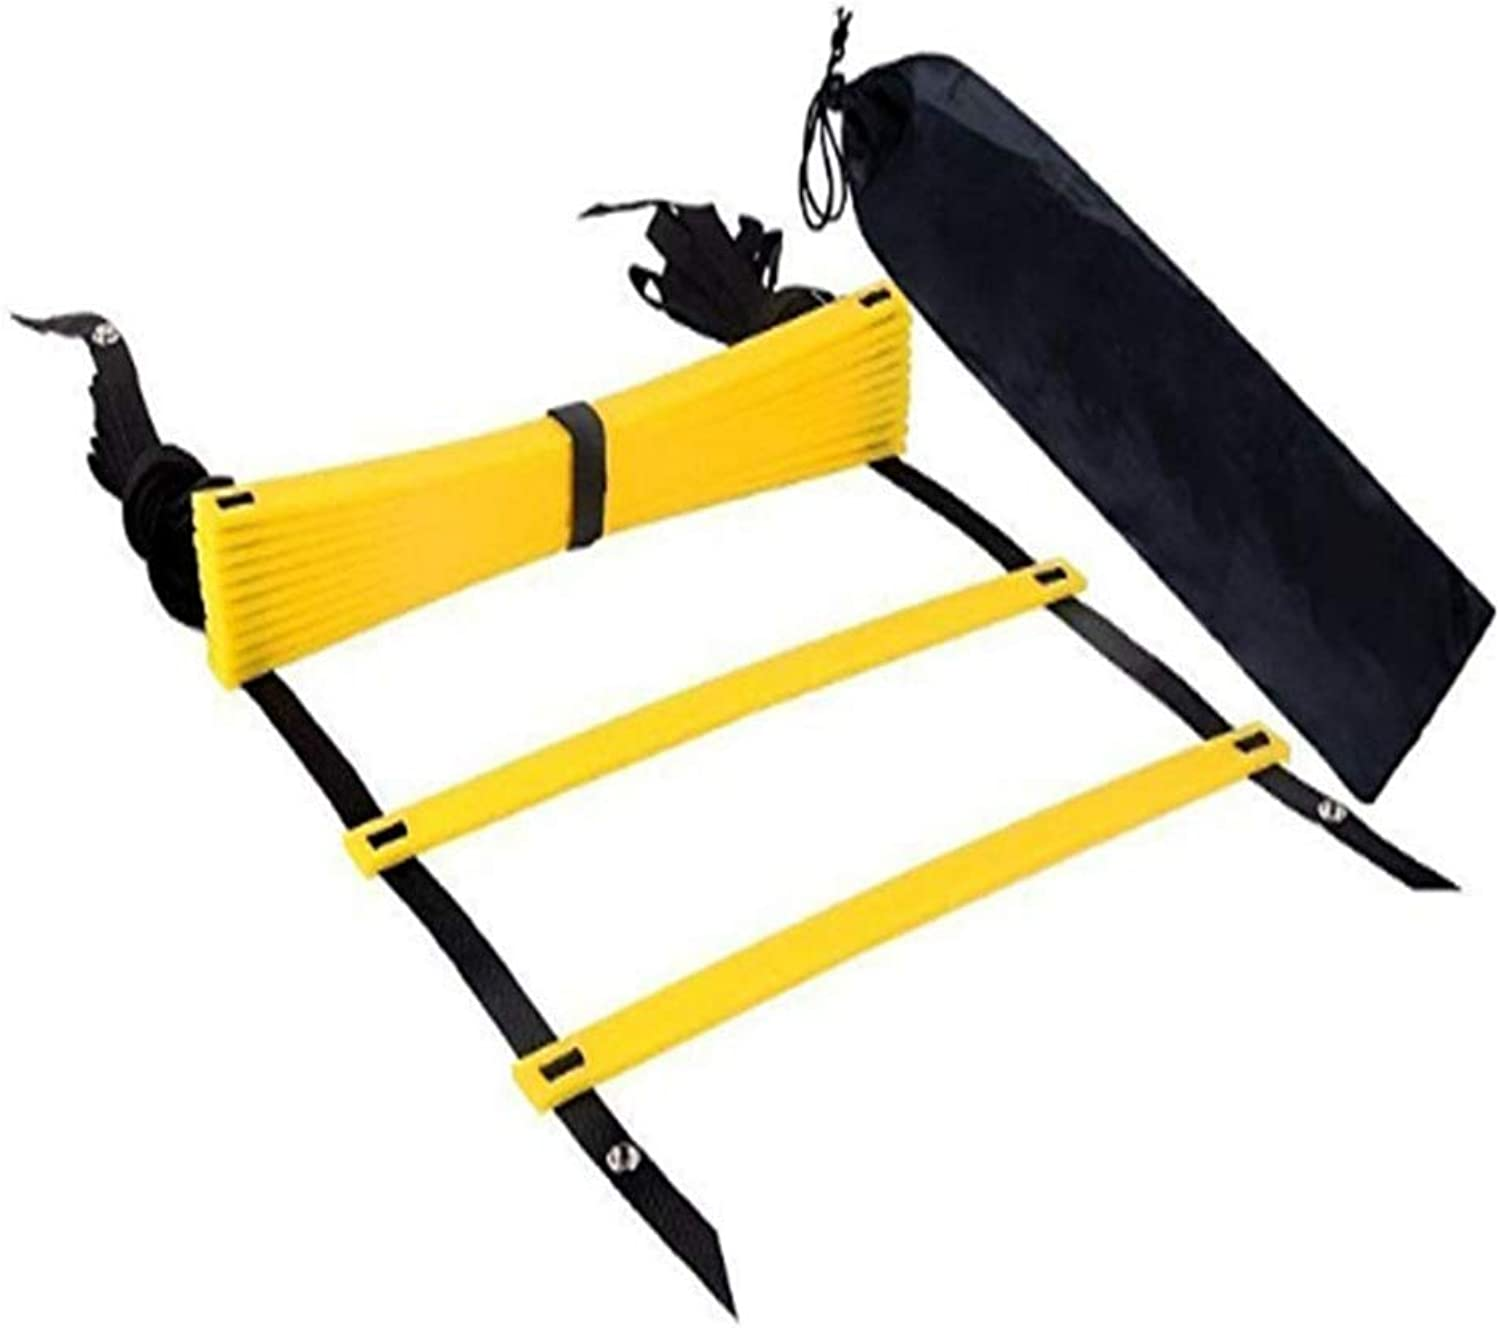 Agility Ladder Fitness Equipment Coordination Ladder Training Set with Carry Case Reinforcement System Fast Training Equipment Faster Footwork and Better Motor Skills